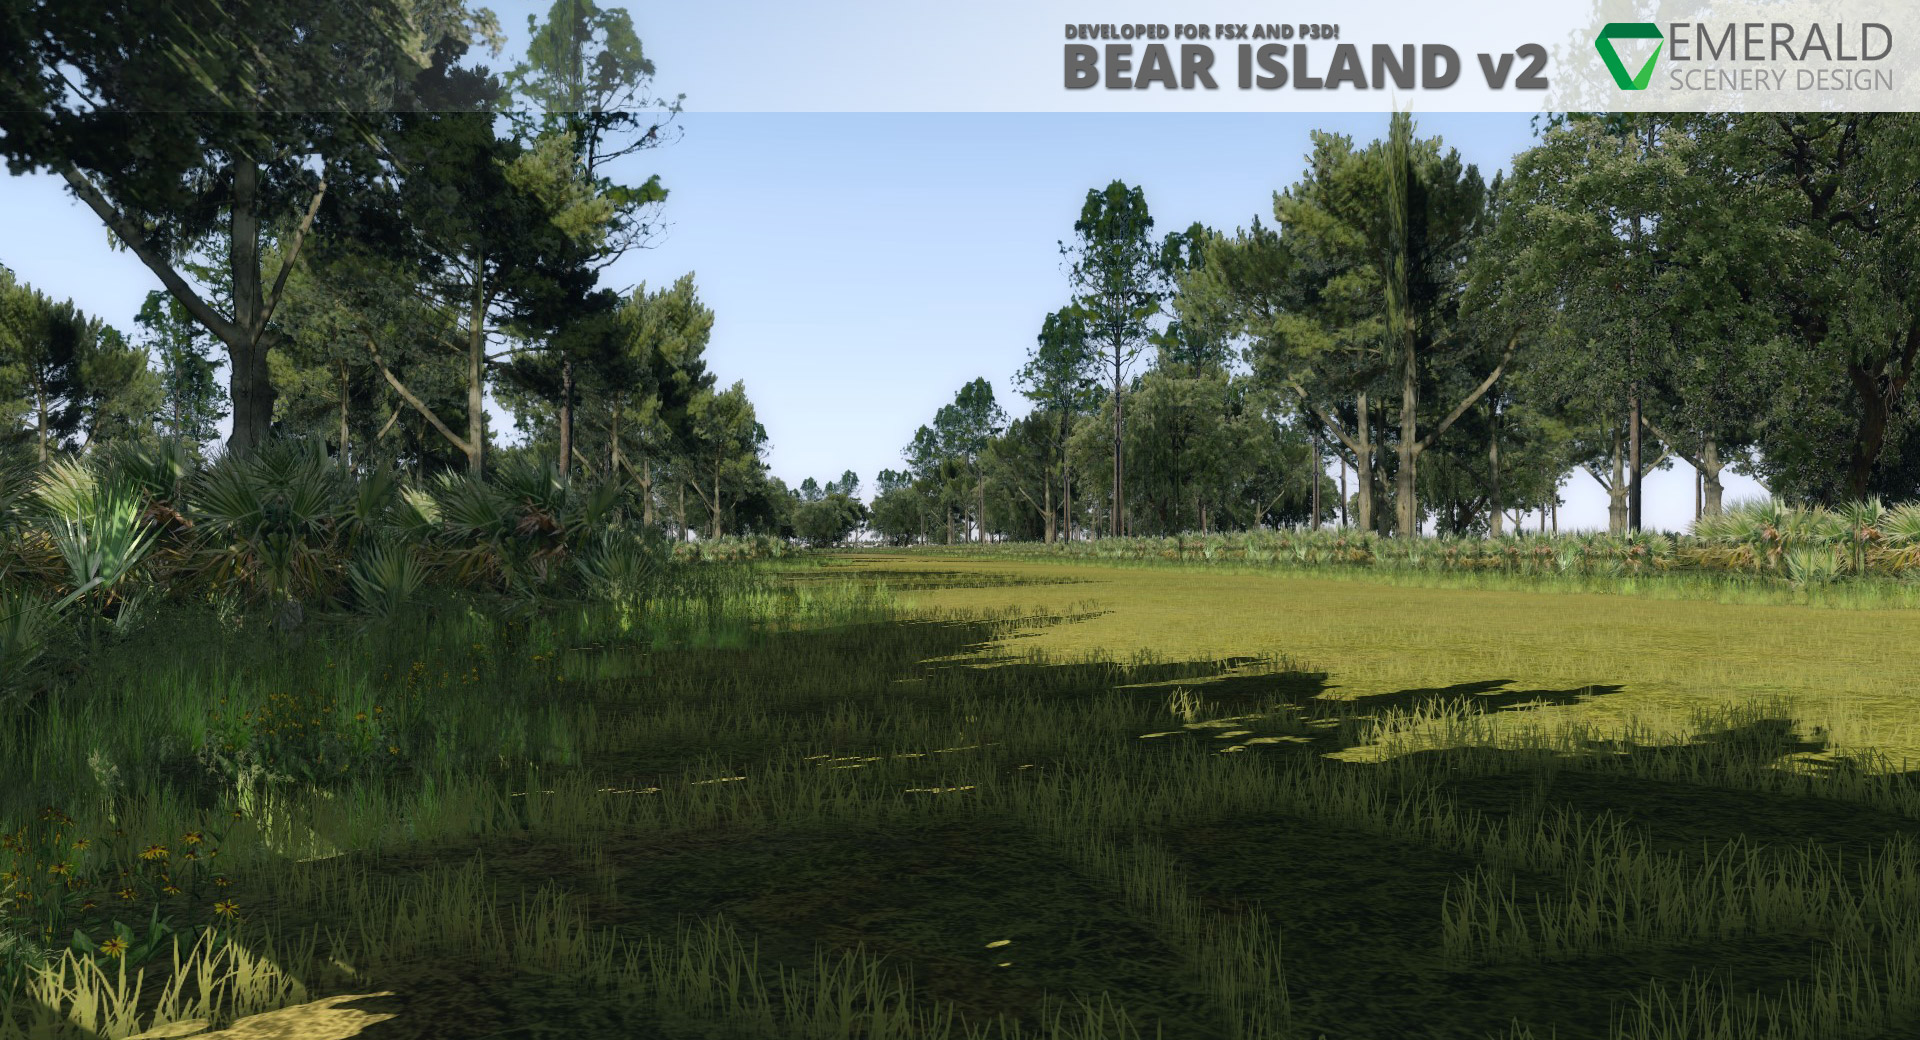 Bear Island, Florida v2 0 - Now Available for FSX and P3D!